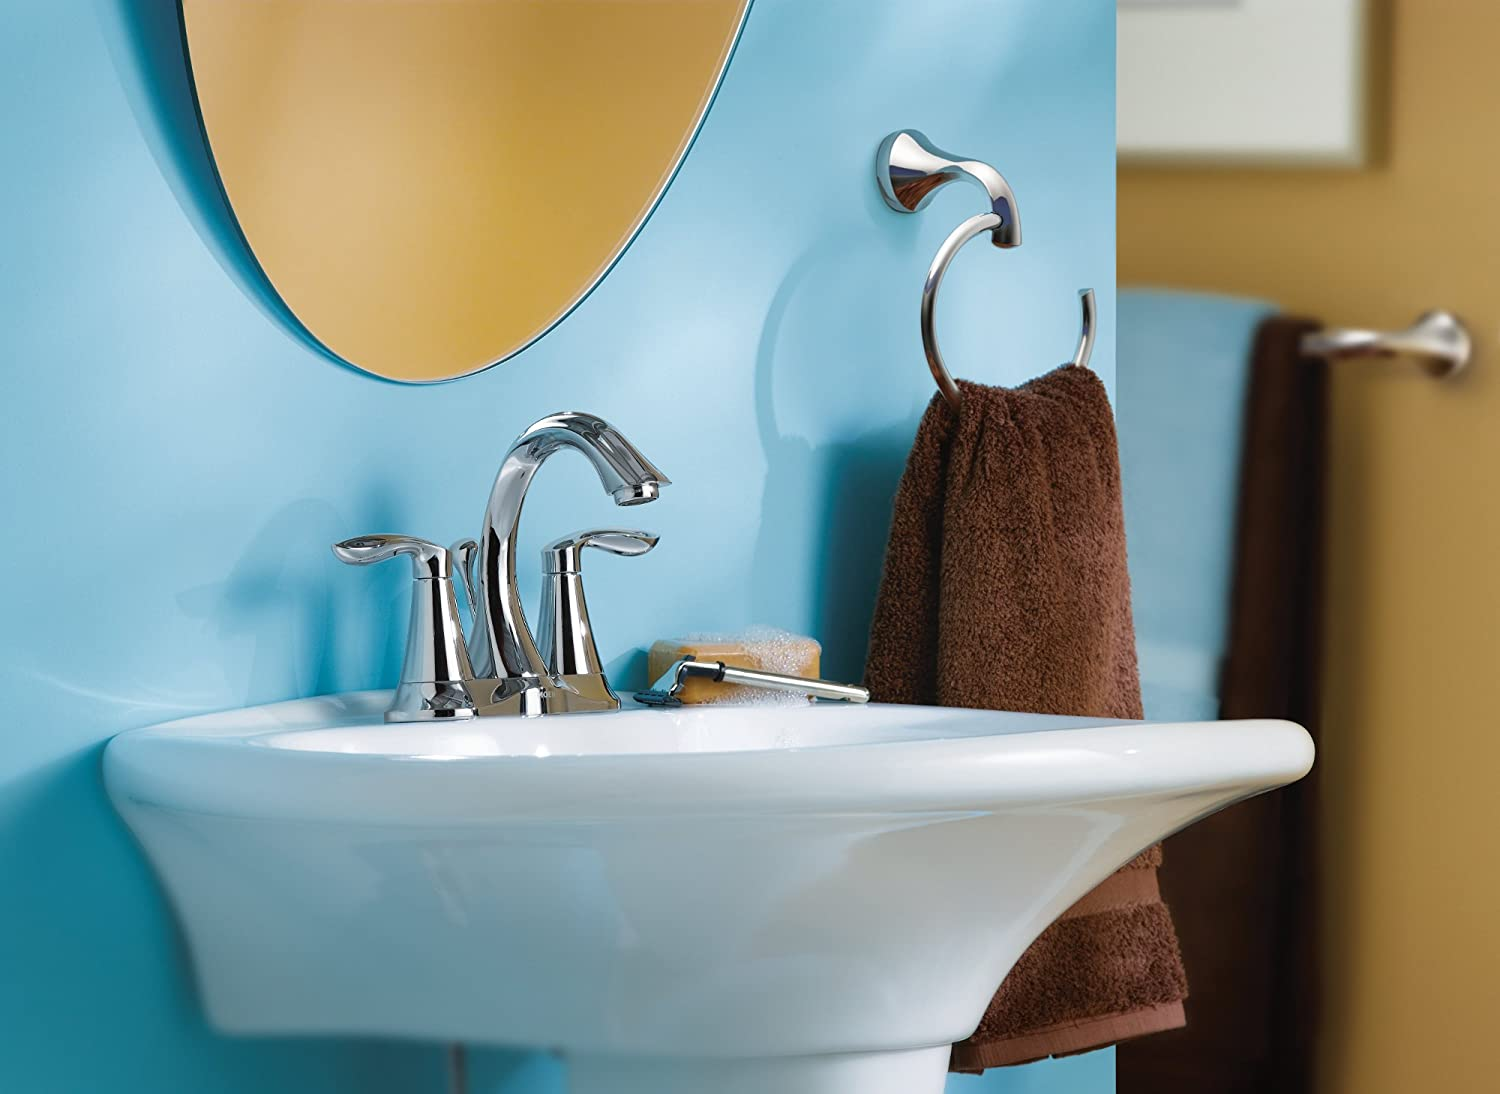 Moen 6410 Eva Two-Handle Lavatory Faucet with Drain Assembly (Chrome ...